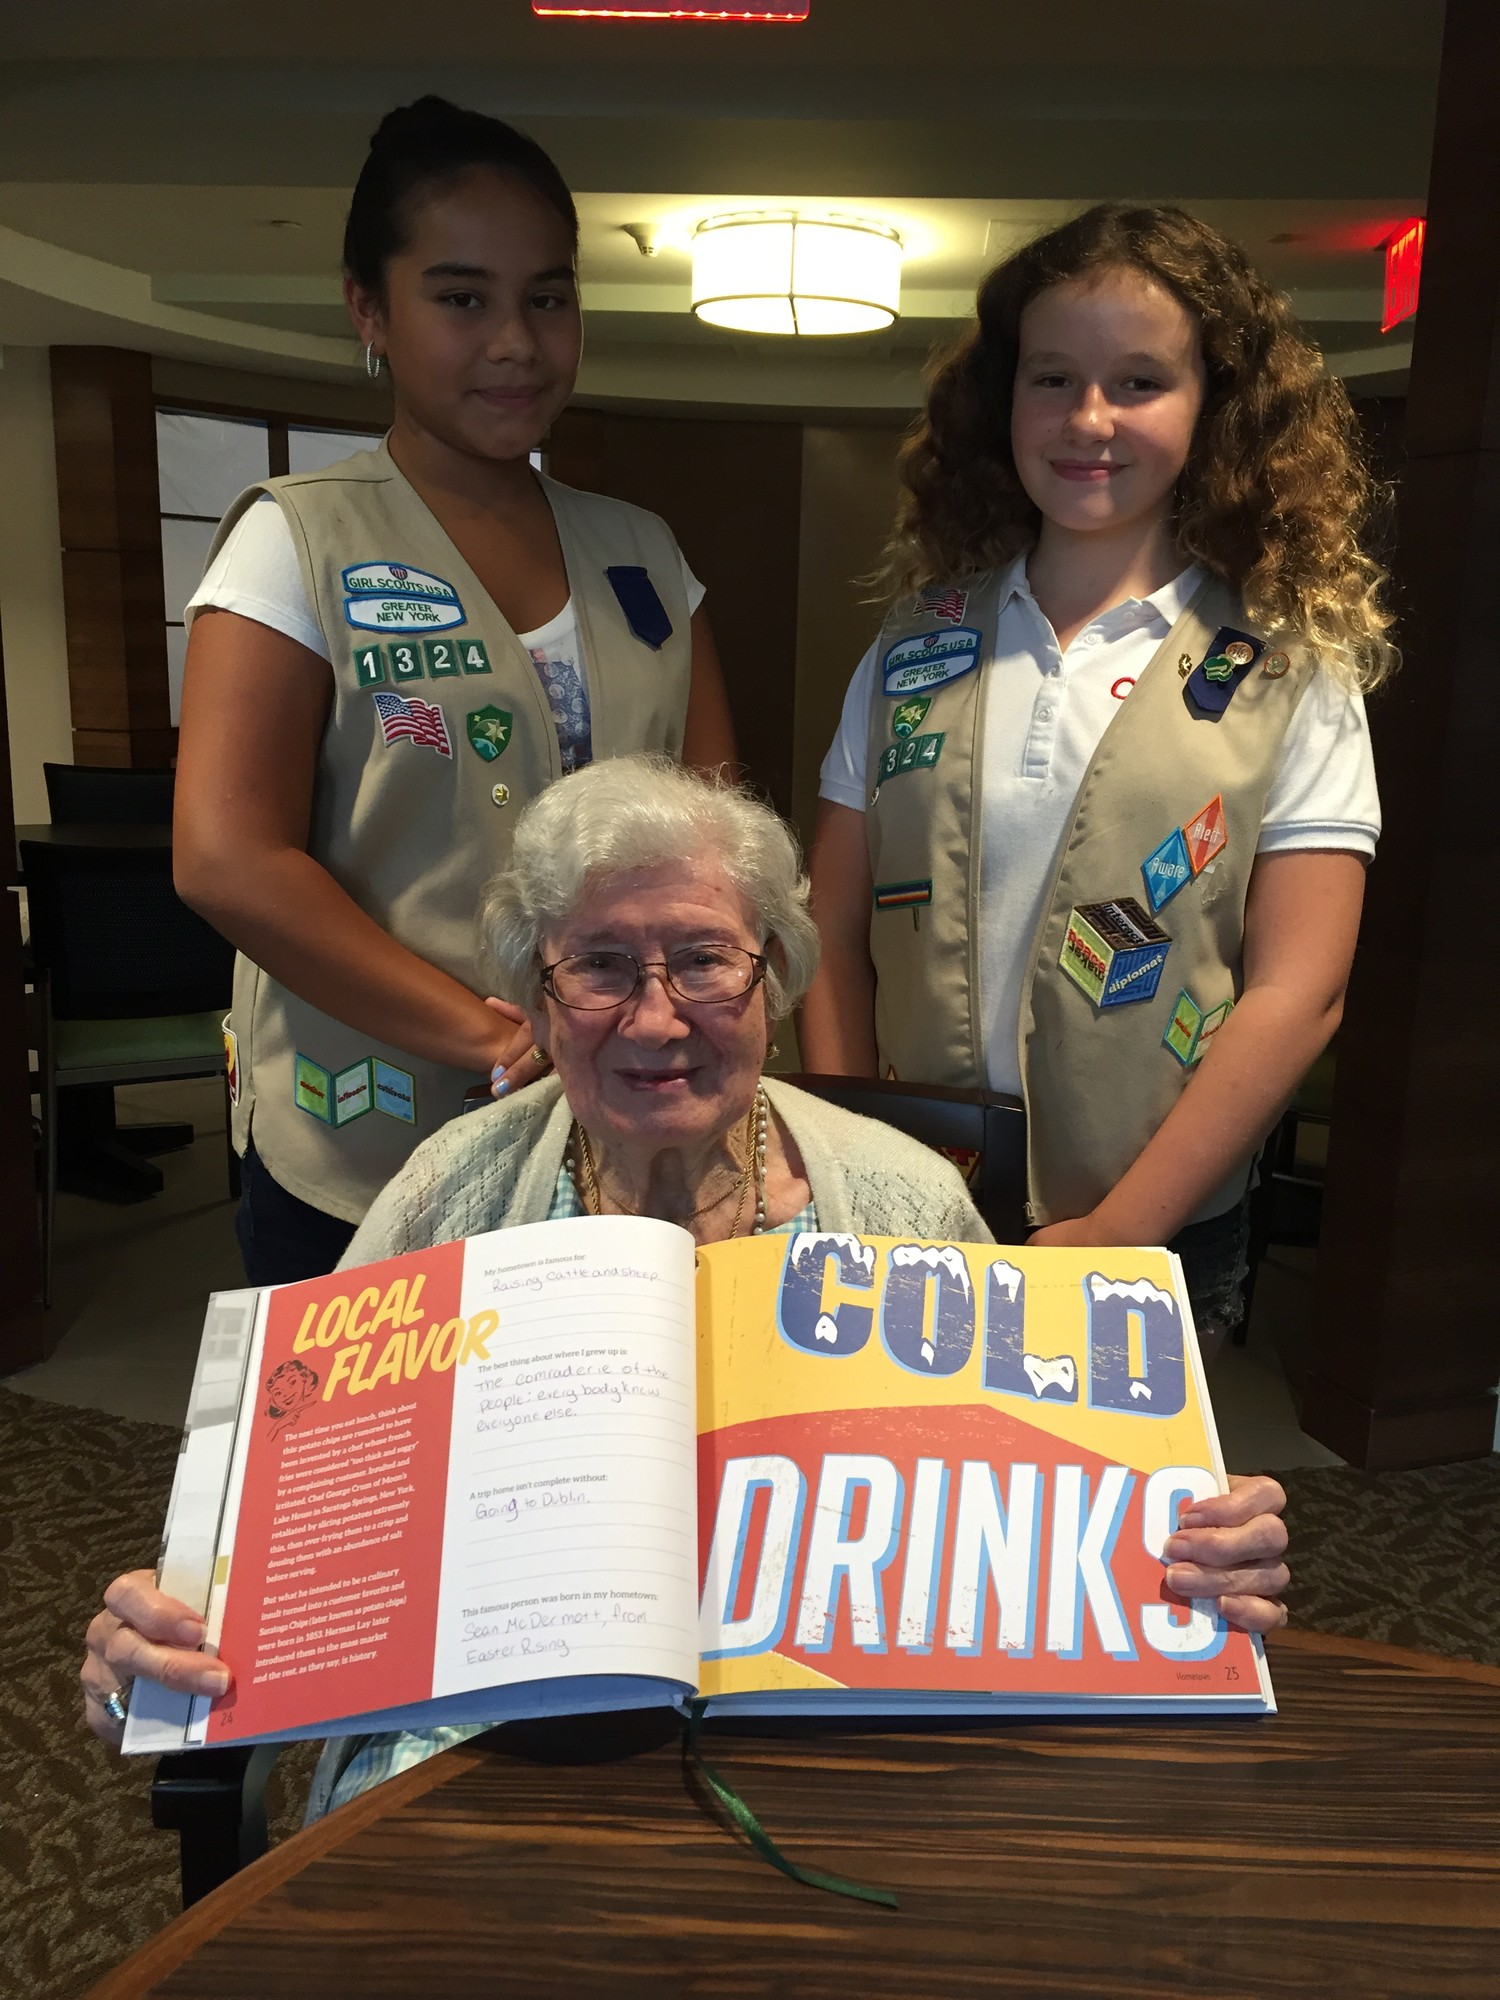 Girl Scouts Connect with Atria Resident Through Journaling